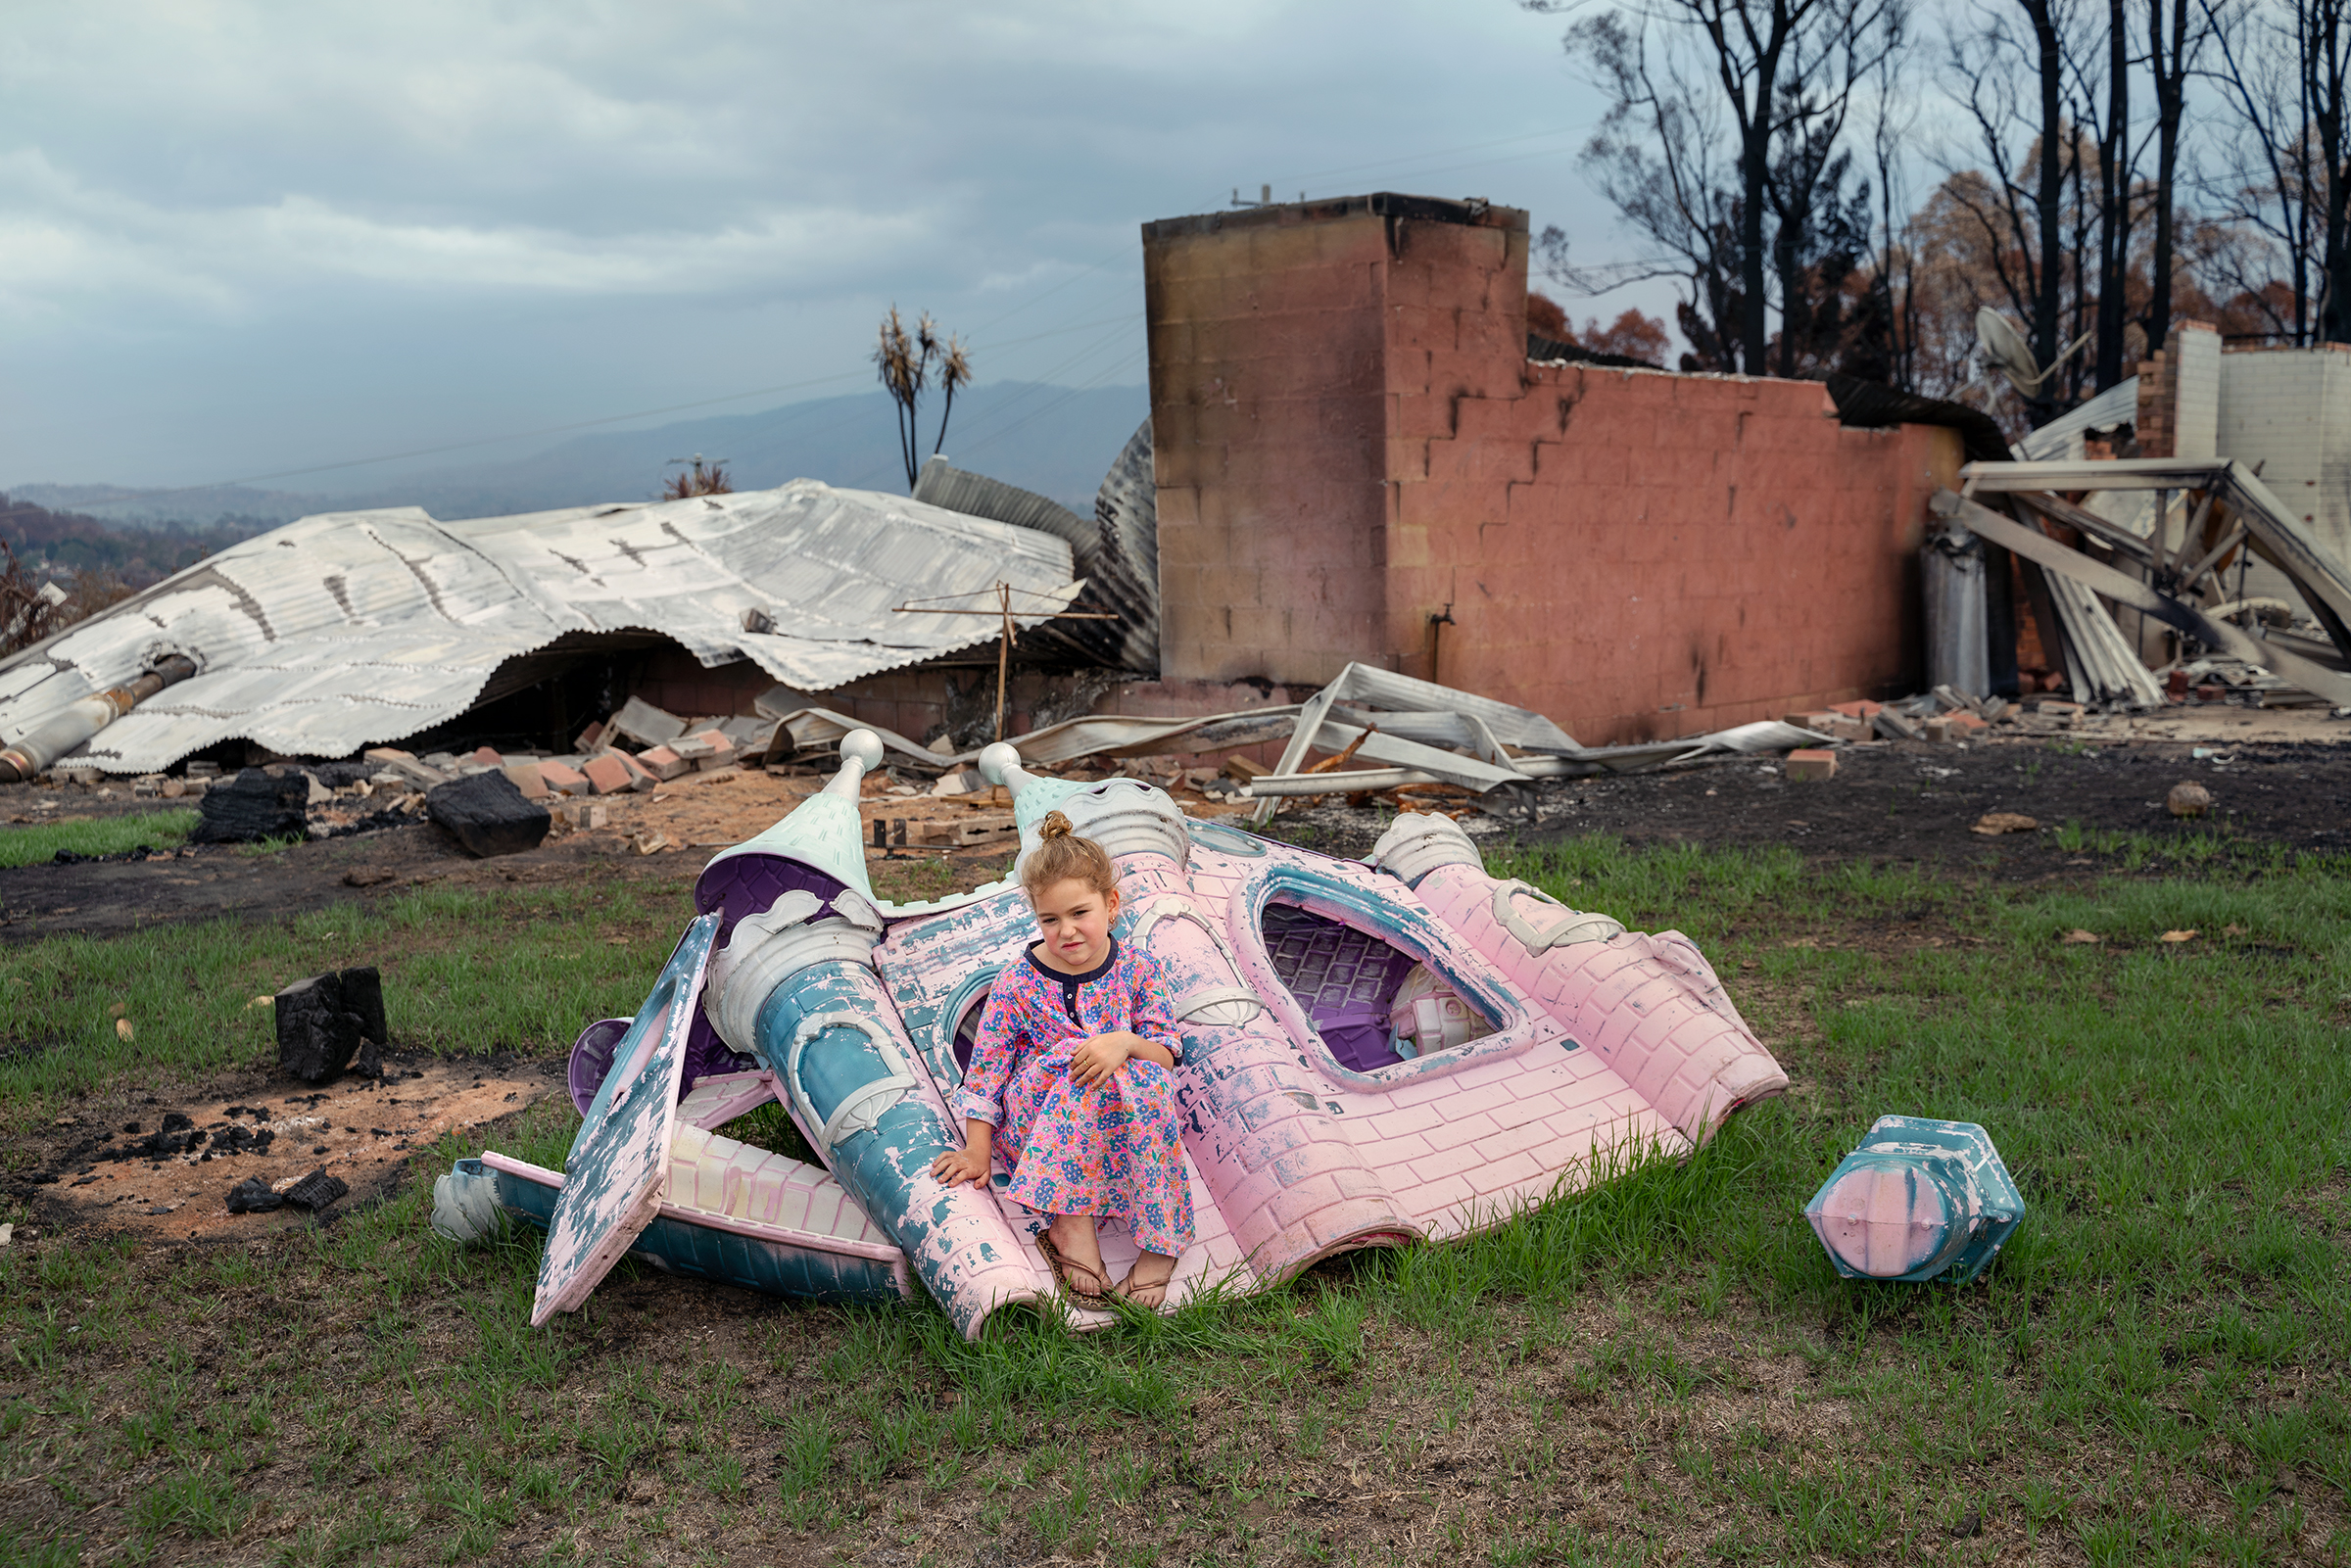 Sarah Rugendyke, 7, sits on a play castle that was burned on her family's property in Cobargo on Jan. 20; an out-of-control bushfire devastated the tourist town about 240 miles south of Sydney on New Year's Eve.